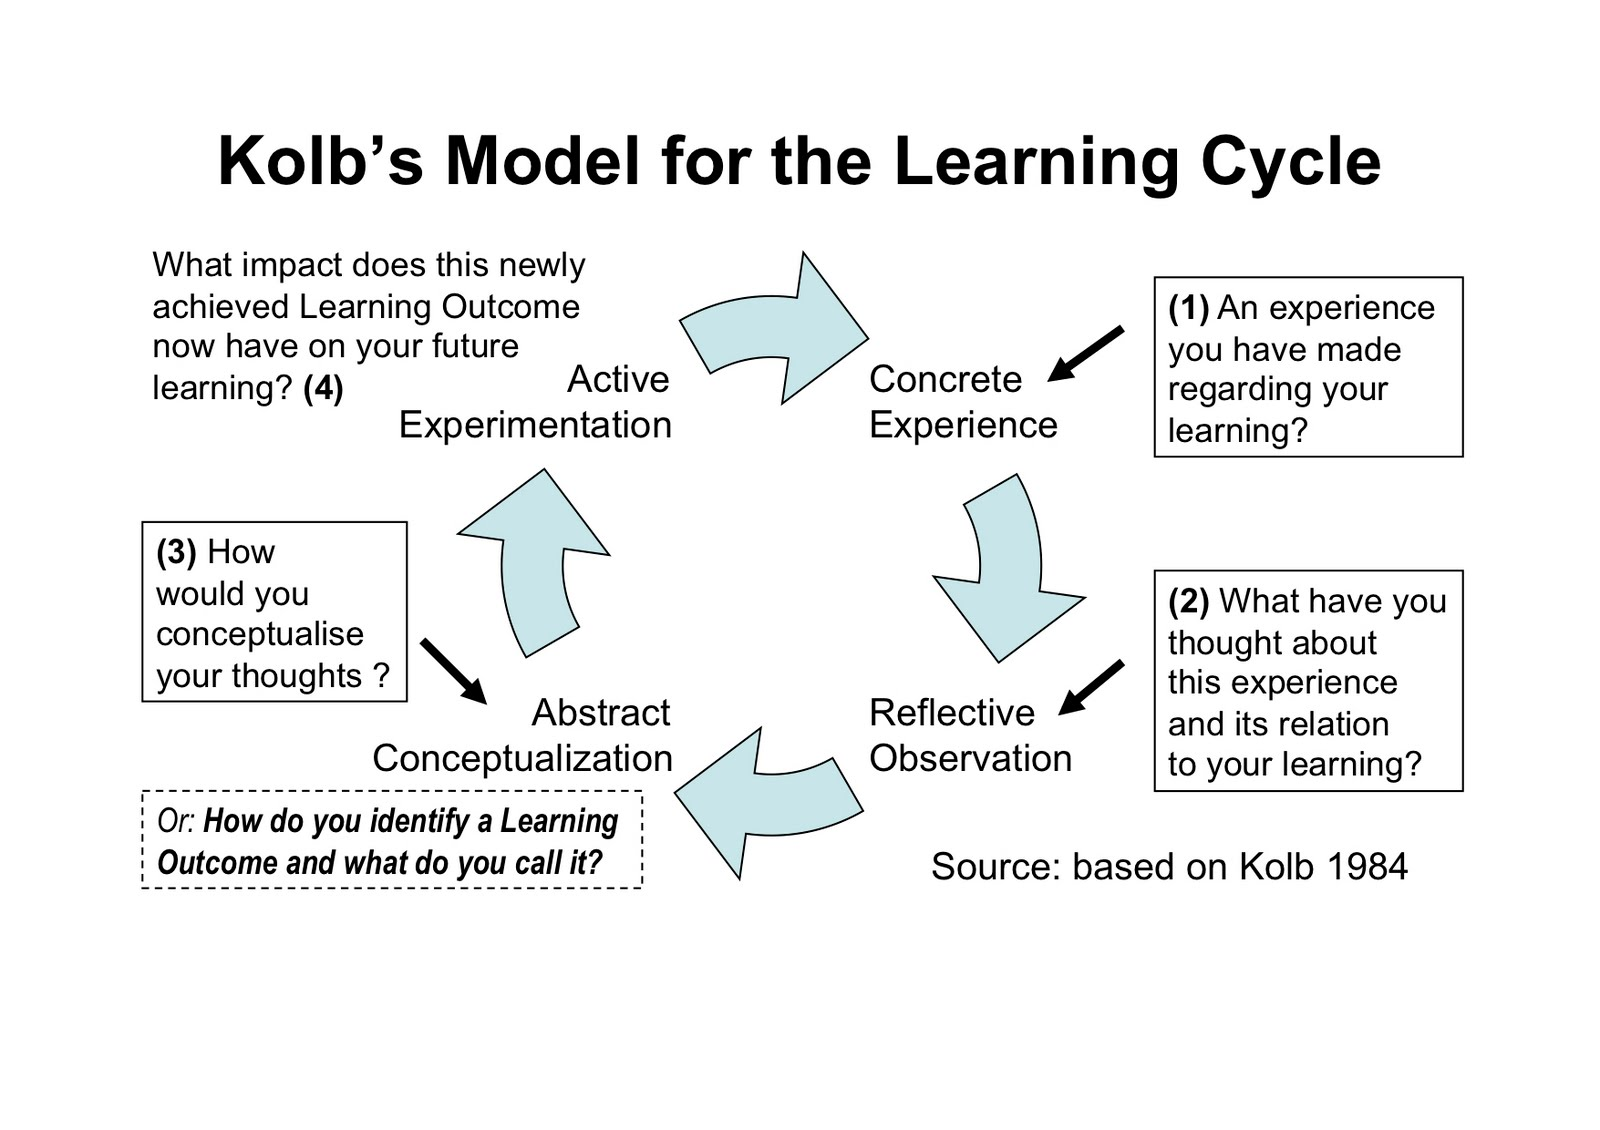 Kolb's Learning Styles and Experiential Learning Cycle